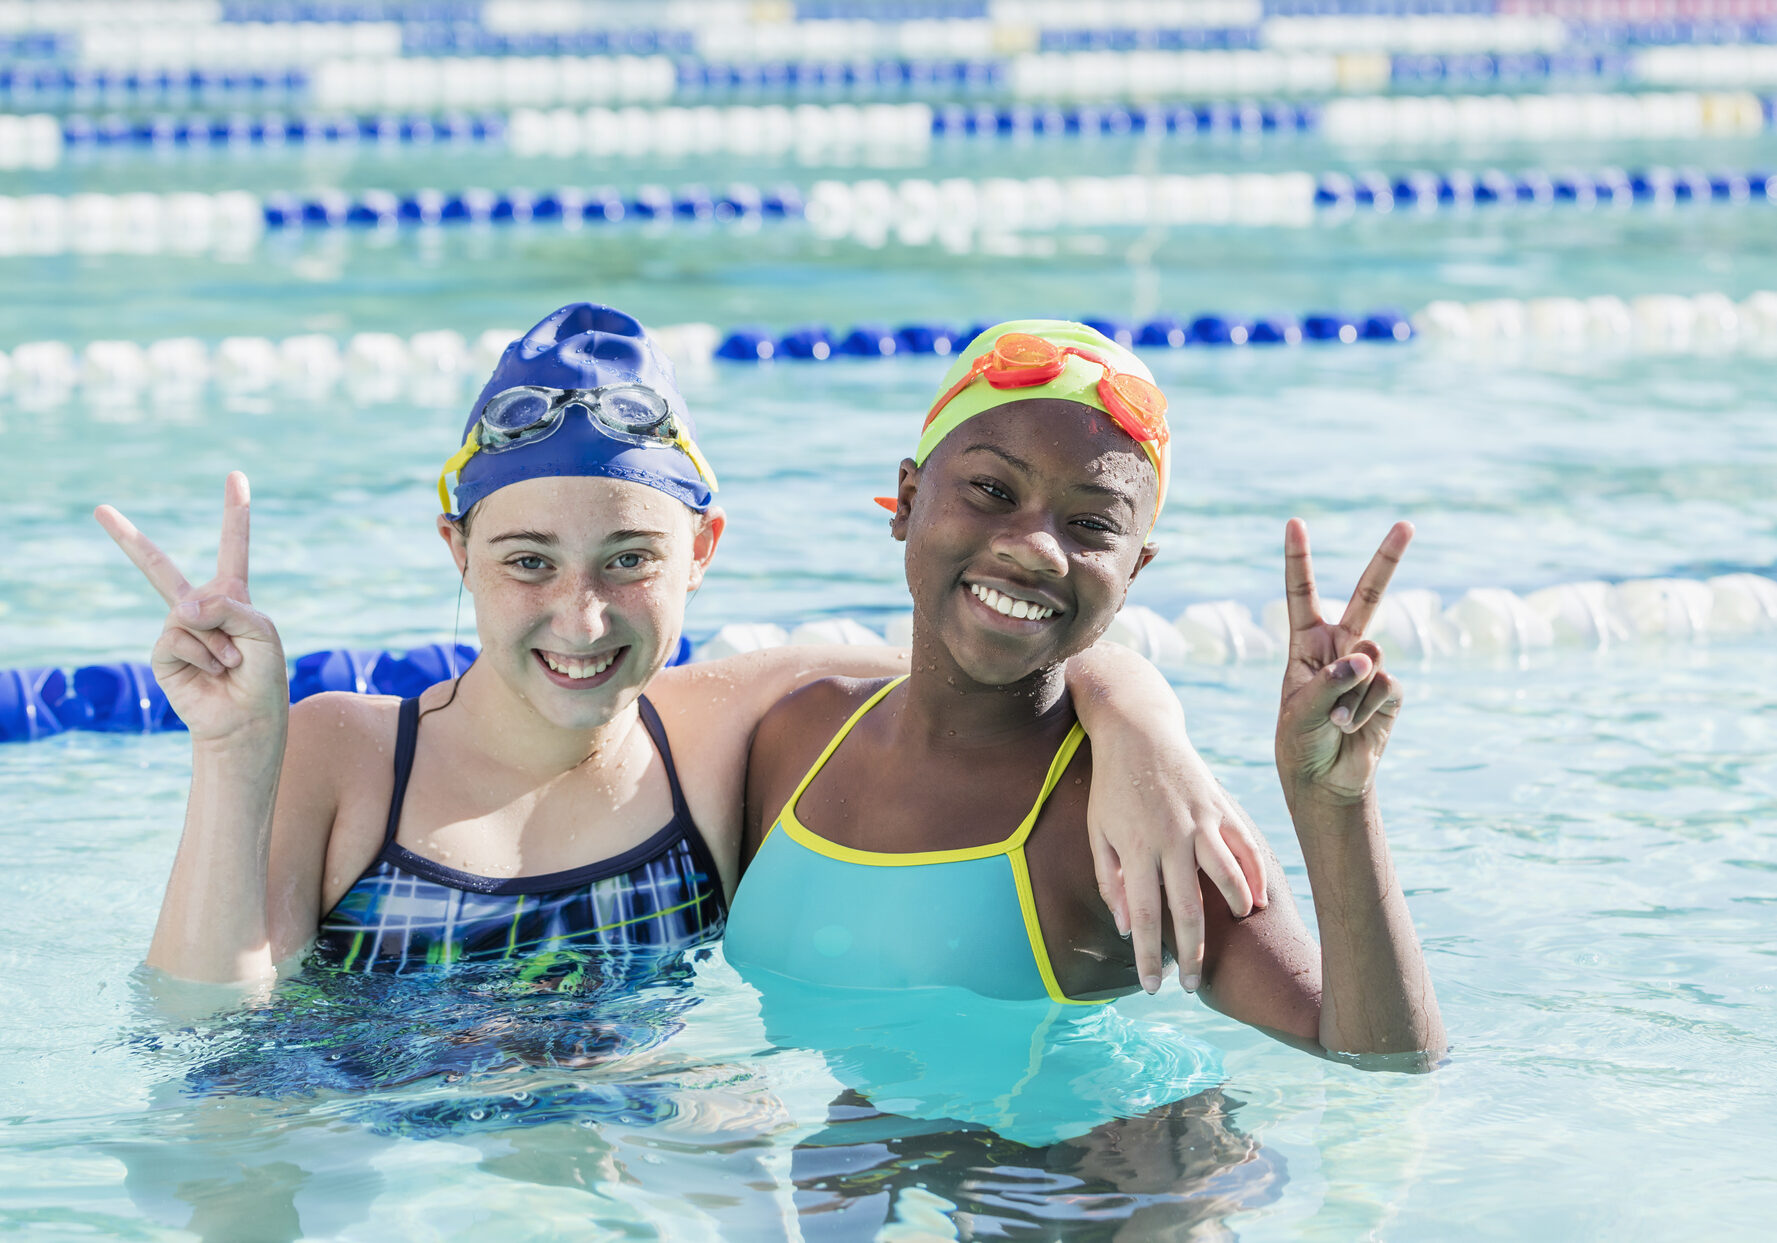 Two multi-ethnic girls standing together in a swimming pool, smiling at the camera. They are best friends having fun together on the swim team. They have swim caps and goggles on their heads. The African-American girl is 10 and her friend is 11 years old. They are holding their hands up in a peace sign, or v for victory.